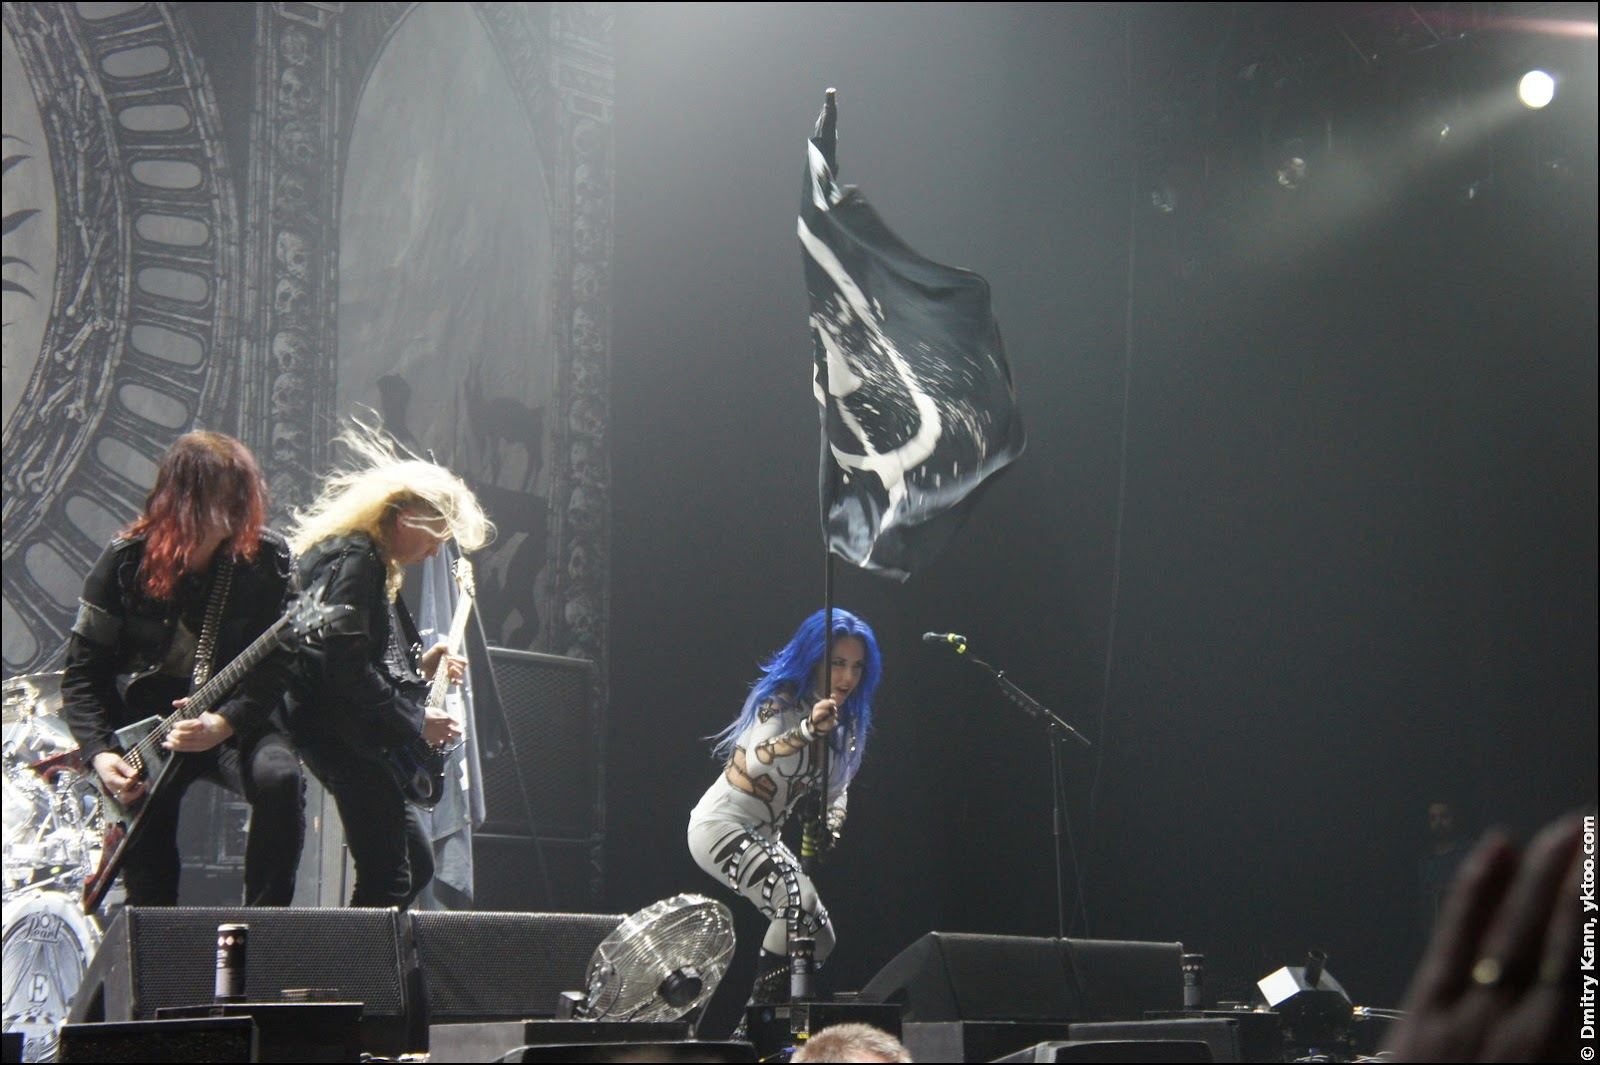 Arch Enemy: Michael Amott, Jeff Loomis and a girl with a flag.